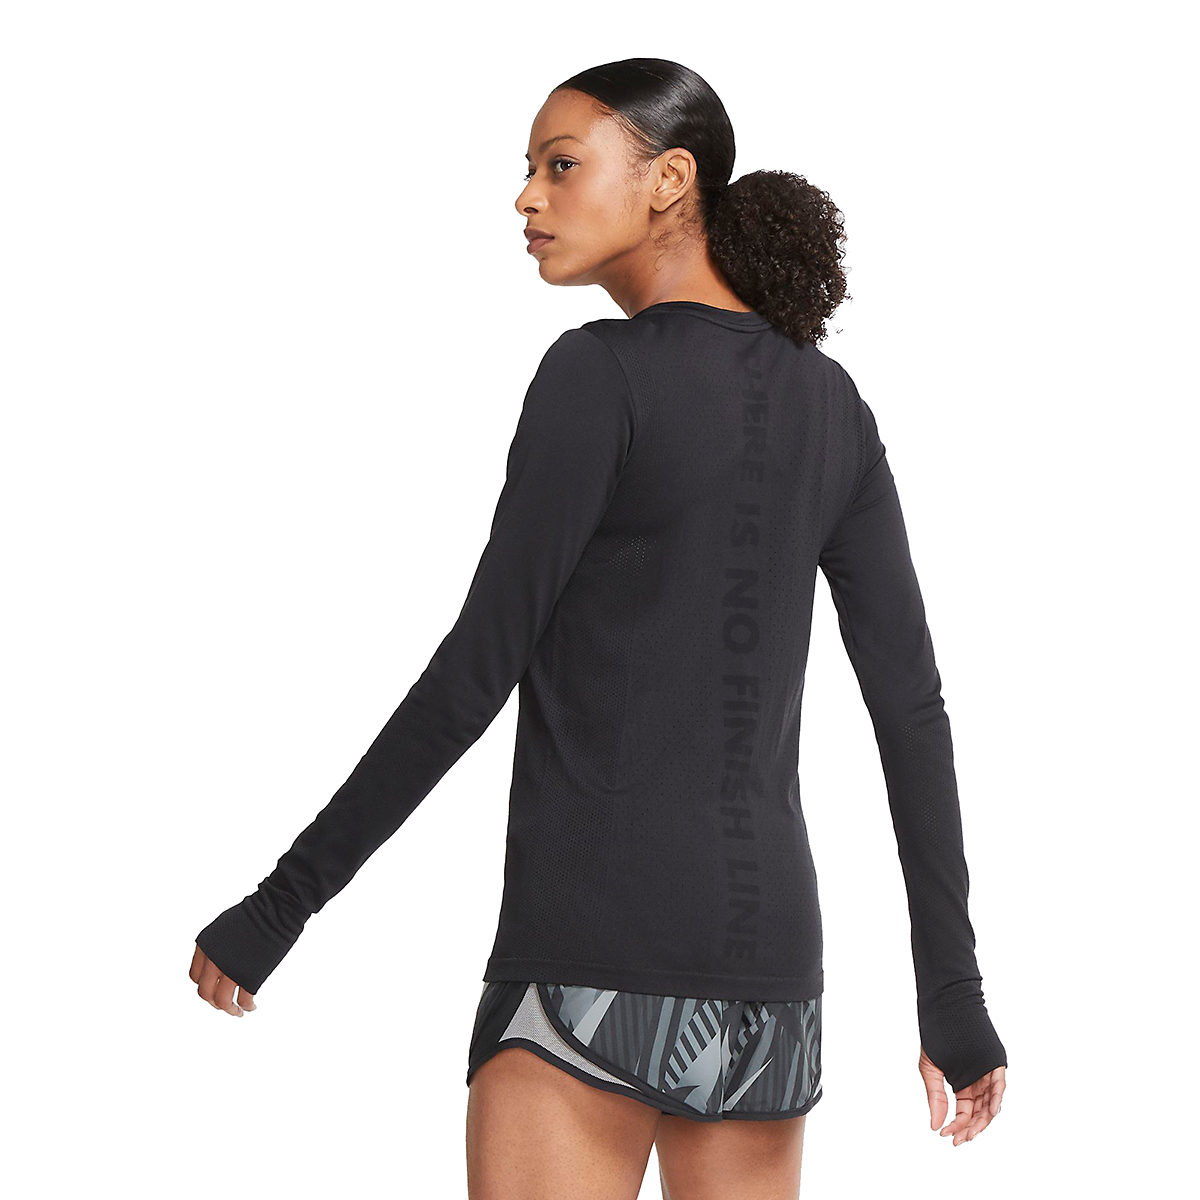 Women's Nike Infinite Running Top Long Sleeve - Color: Black - Size: XS, Black, large, image 2